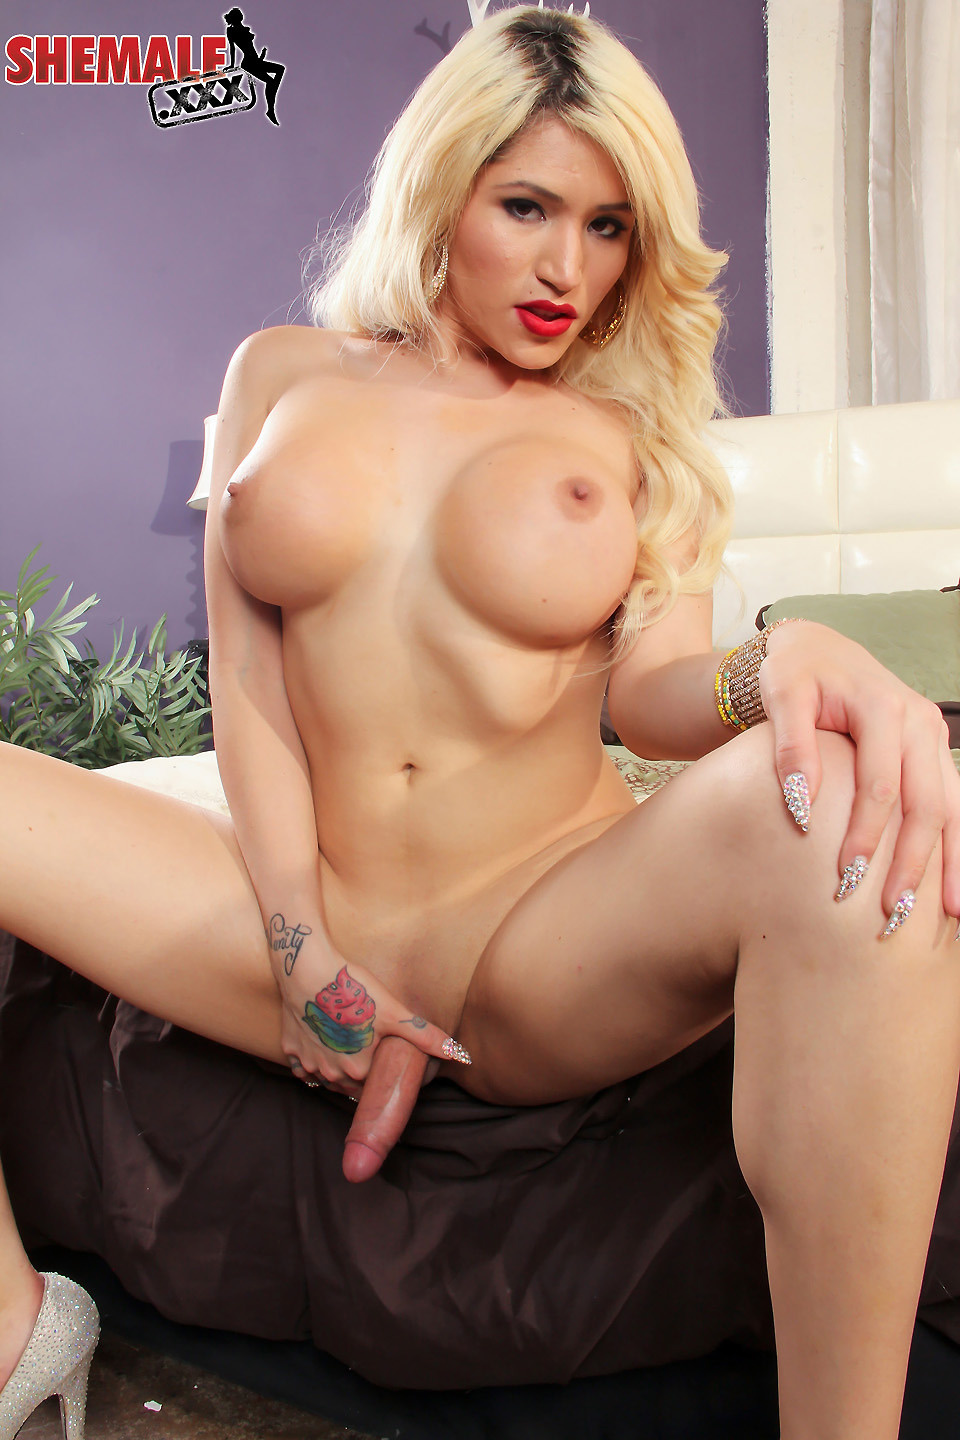 shemale tranny dressed undressed